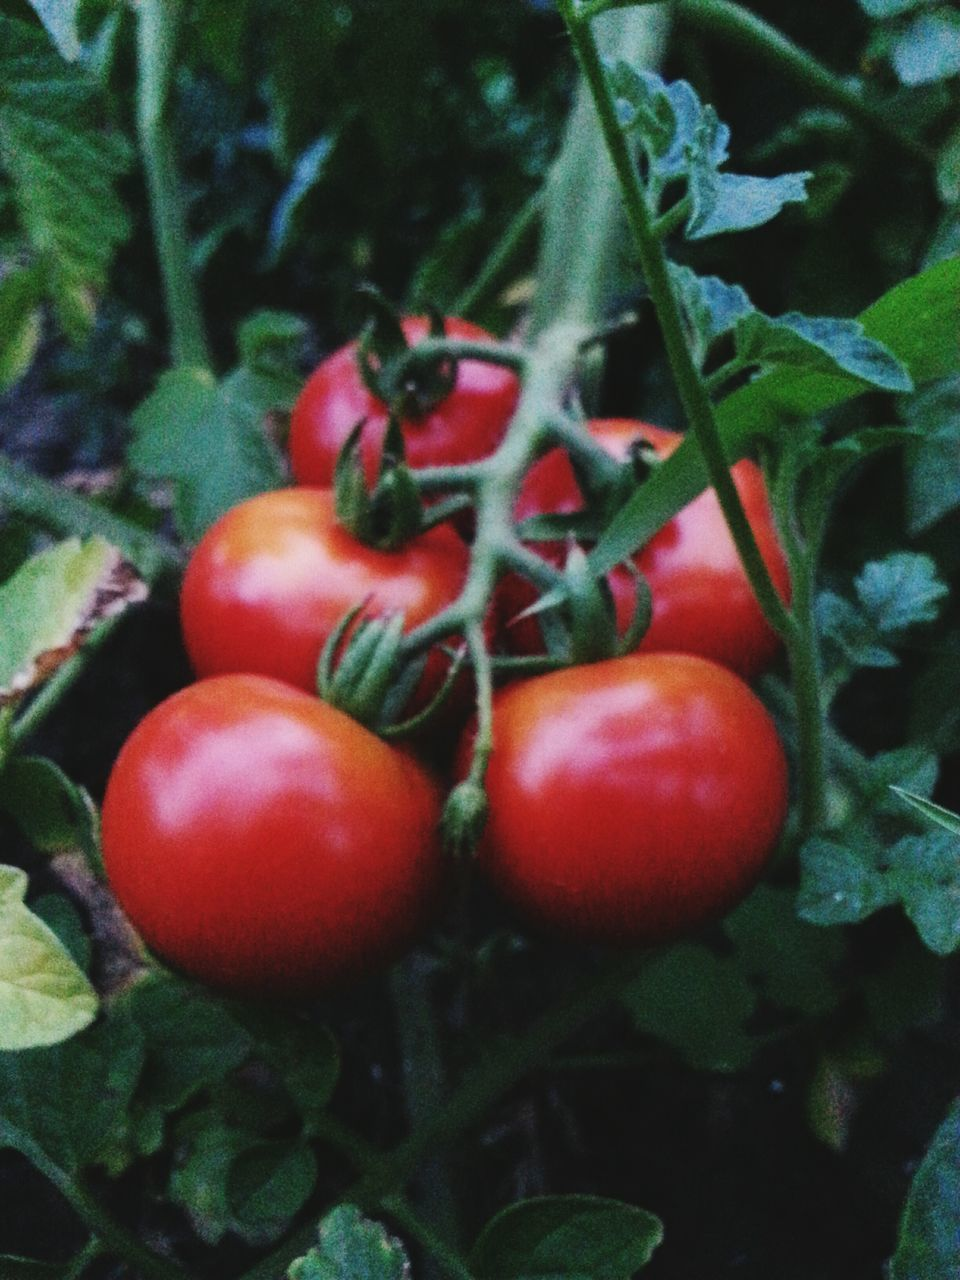 food and drink, growth, food, fruit, red, leaf, plant, no people, green color, nature, healthy eating, freshness, outdoors, vegetable, tomato, close-up, day, beauty in nature, tree